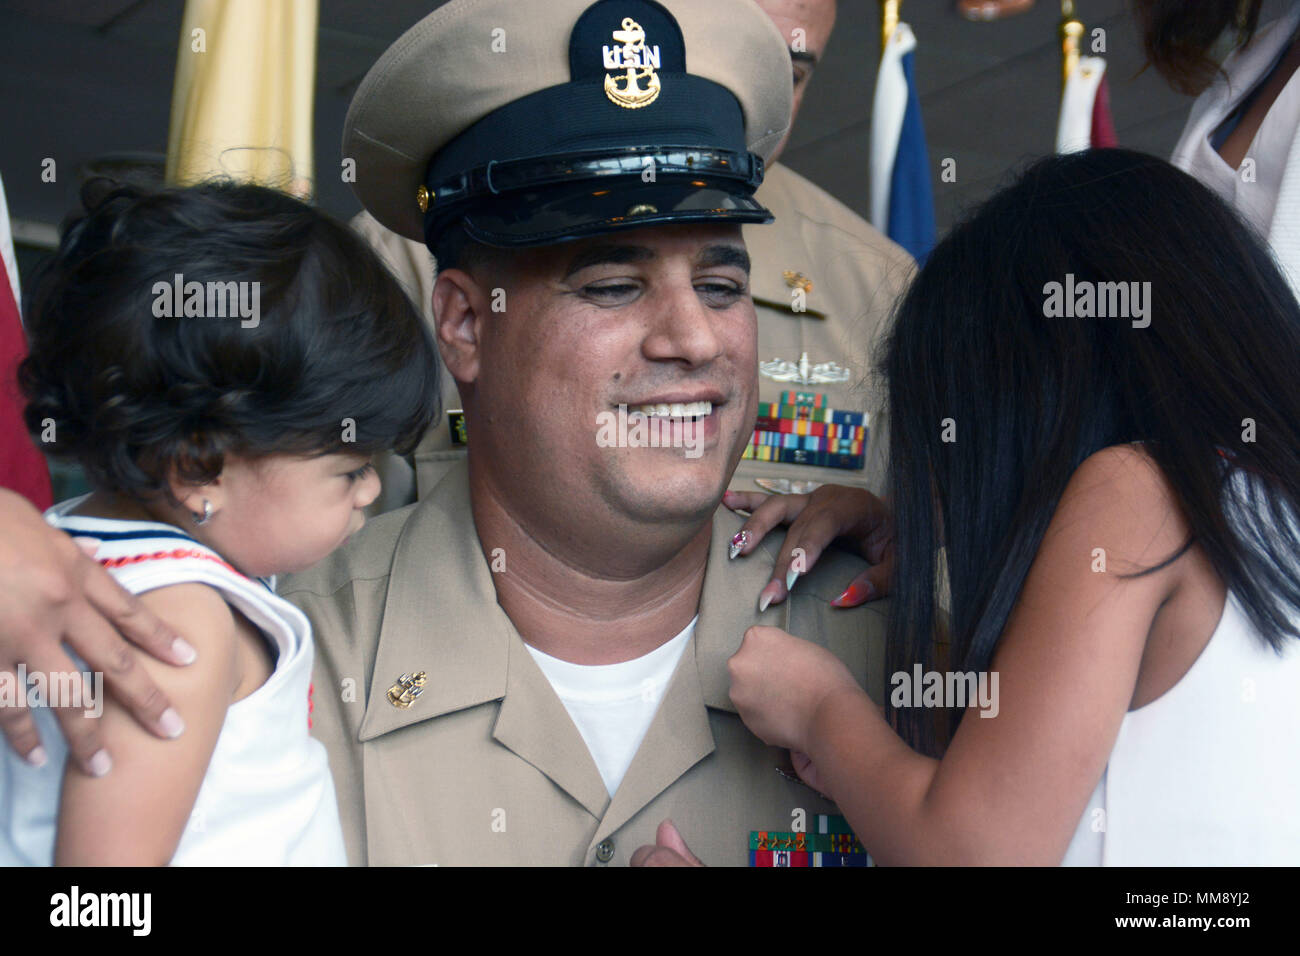 GARDEN CITY, New York (Sept. 15, 2017) Chief Navy Counselor Jhonan Mercado,  a native of New York and graduate of Cardinal Hayes High School, having his anchors pinned on his collar by his daughters during a chief petty officer pinning ceremony for Navy Recruiting District New York at the Cradle of Aviation Museum. (U.S. Navy photo by Mass Communication Specialist 1st Class Carlos M. Vazquez II/Released) - Stock Image